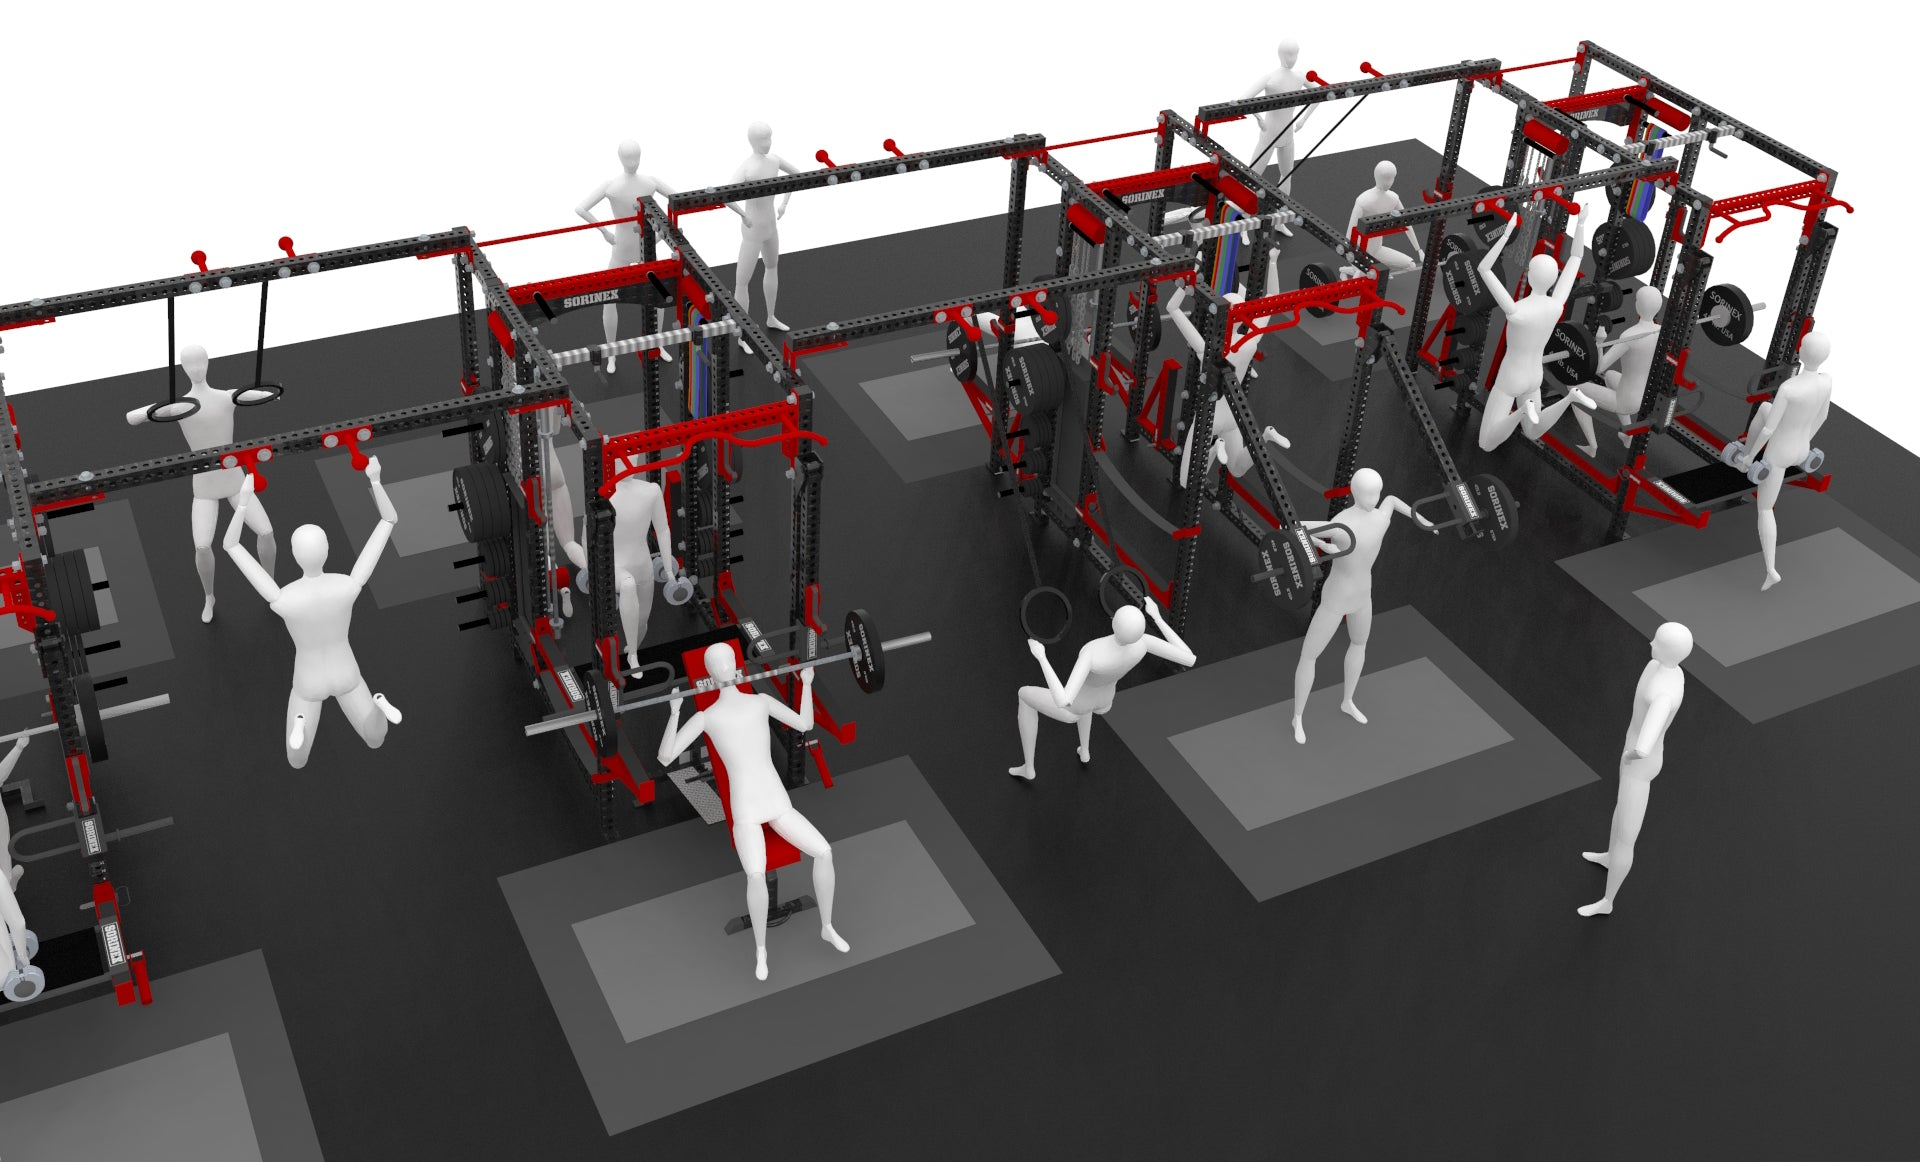 Sorinex weight rooms optimize your space to give you the most training space per square feet